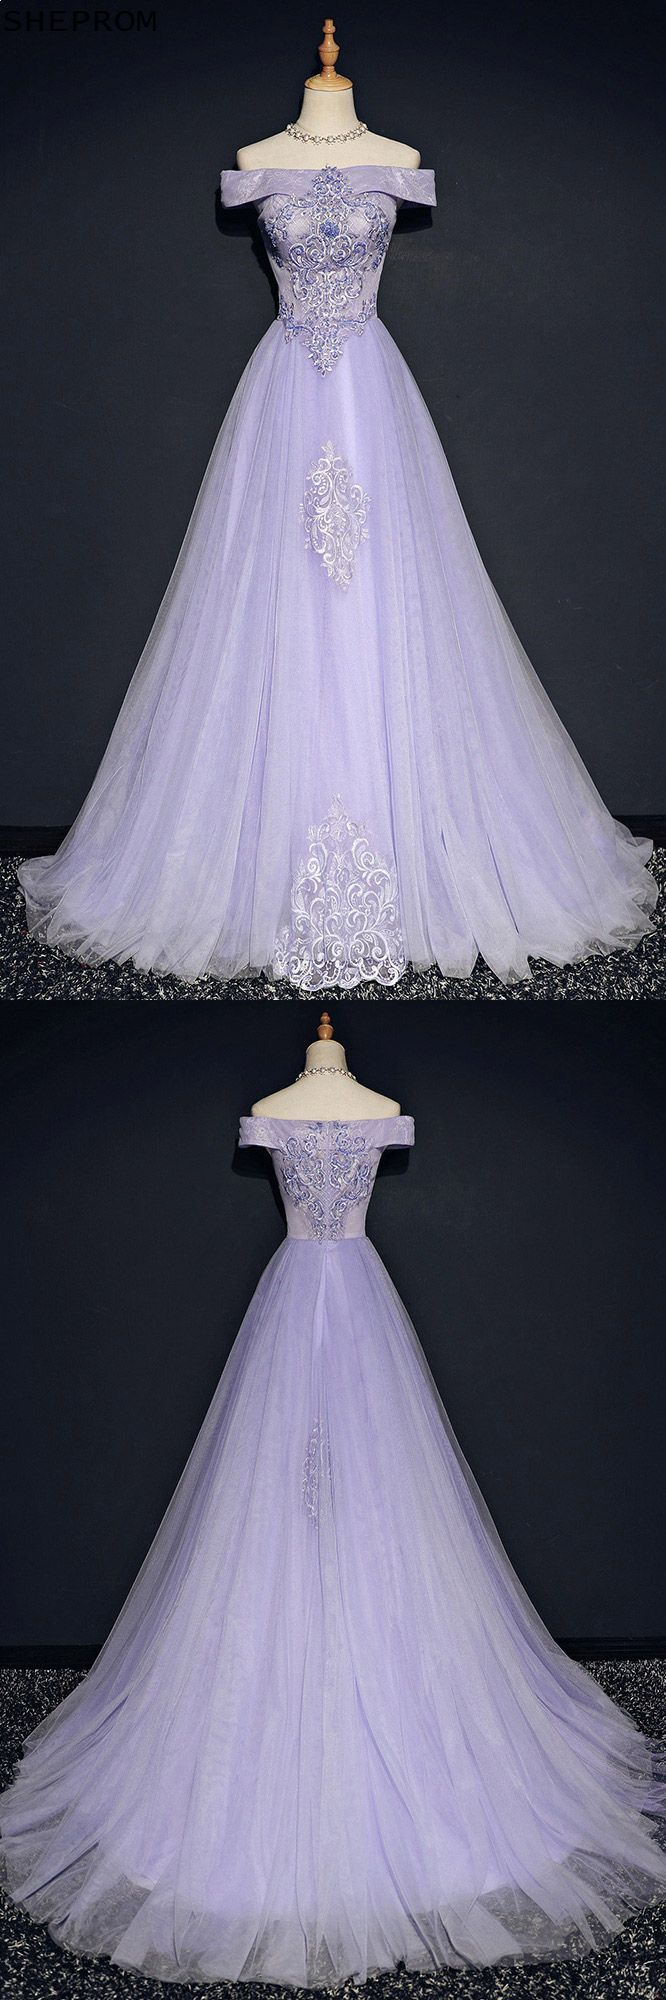 Special lavender a line long prom dress off the shoulder with lace